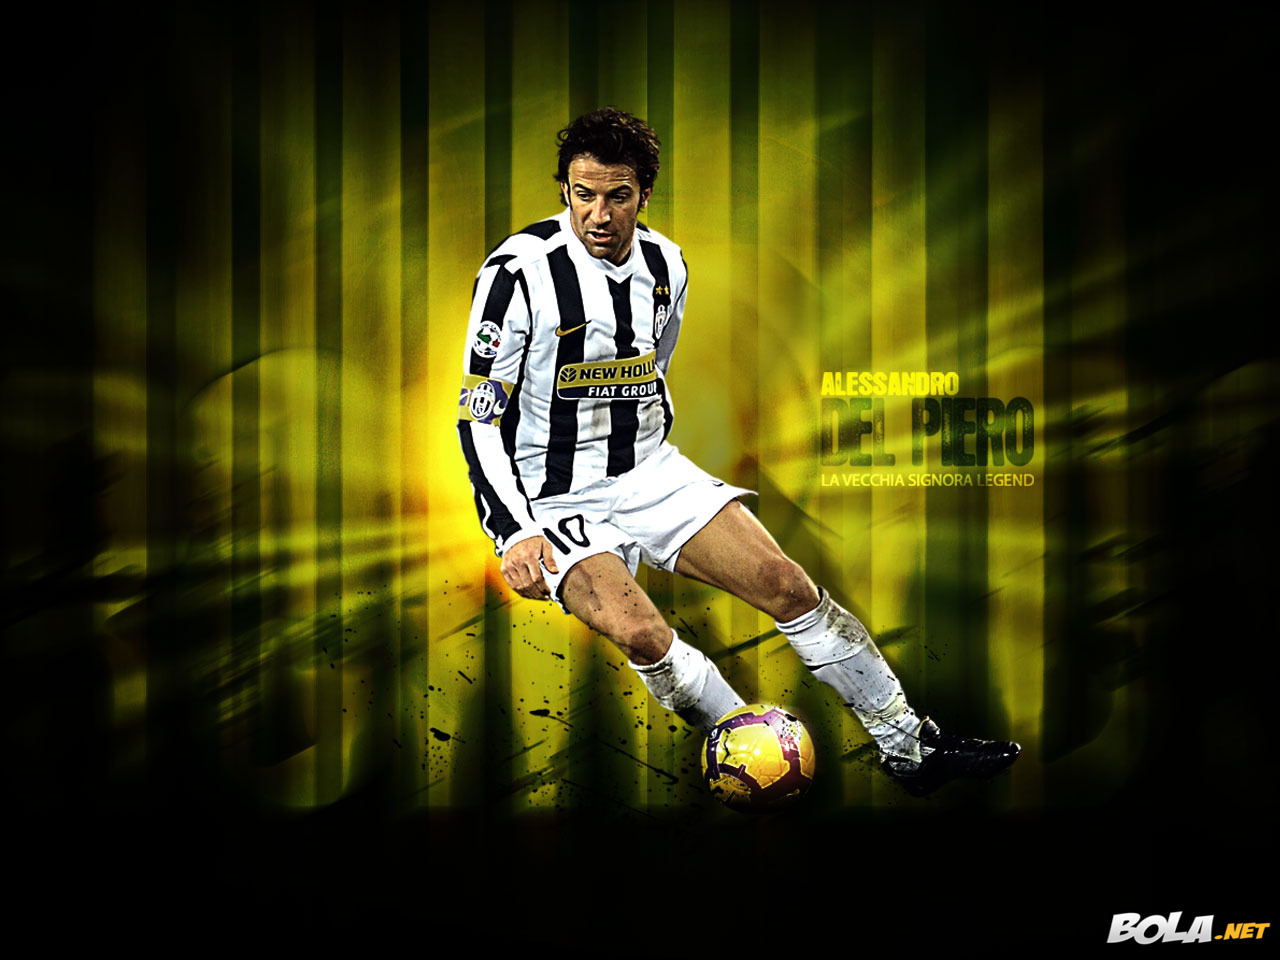 Free Download Bolanet Download Wallpaper Alessandro Del